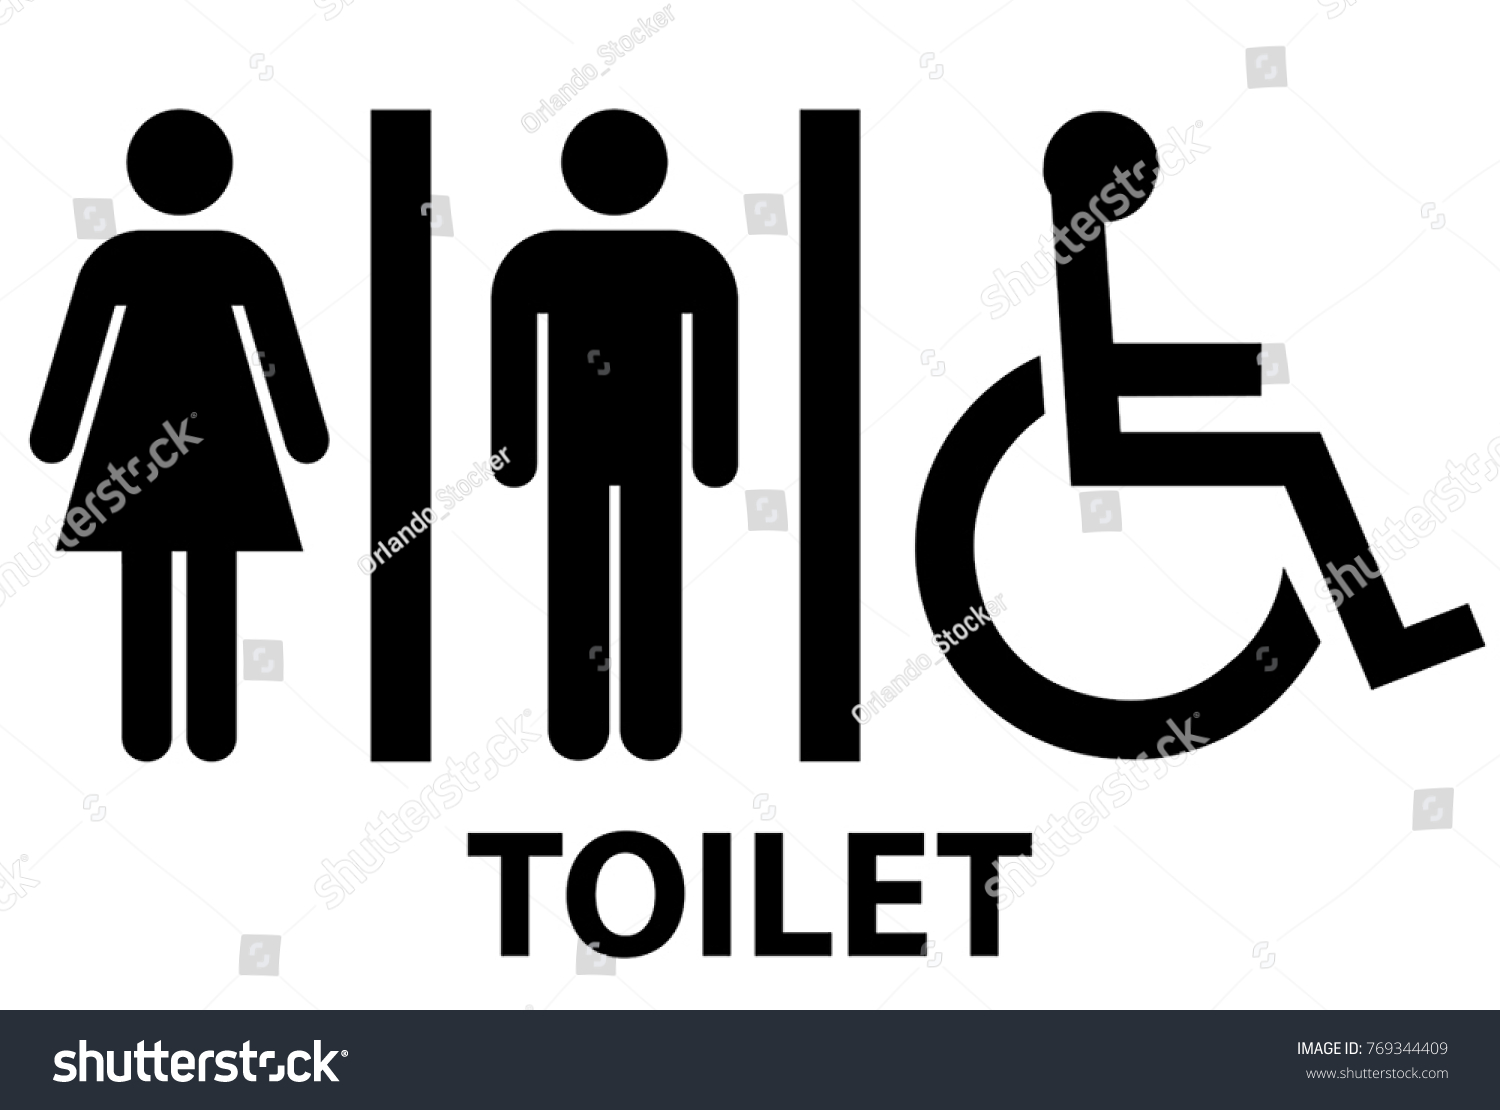 Male and Female Standard Symbol Toilet Sign. Male Female Standard Symbol Toilet Sign Stock Vector 769344409